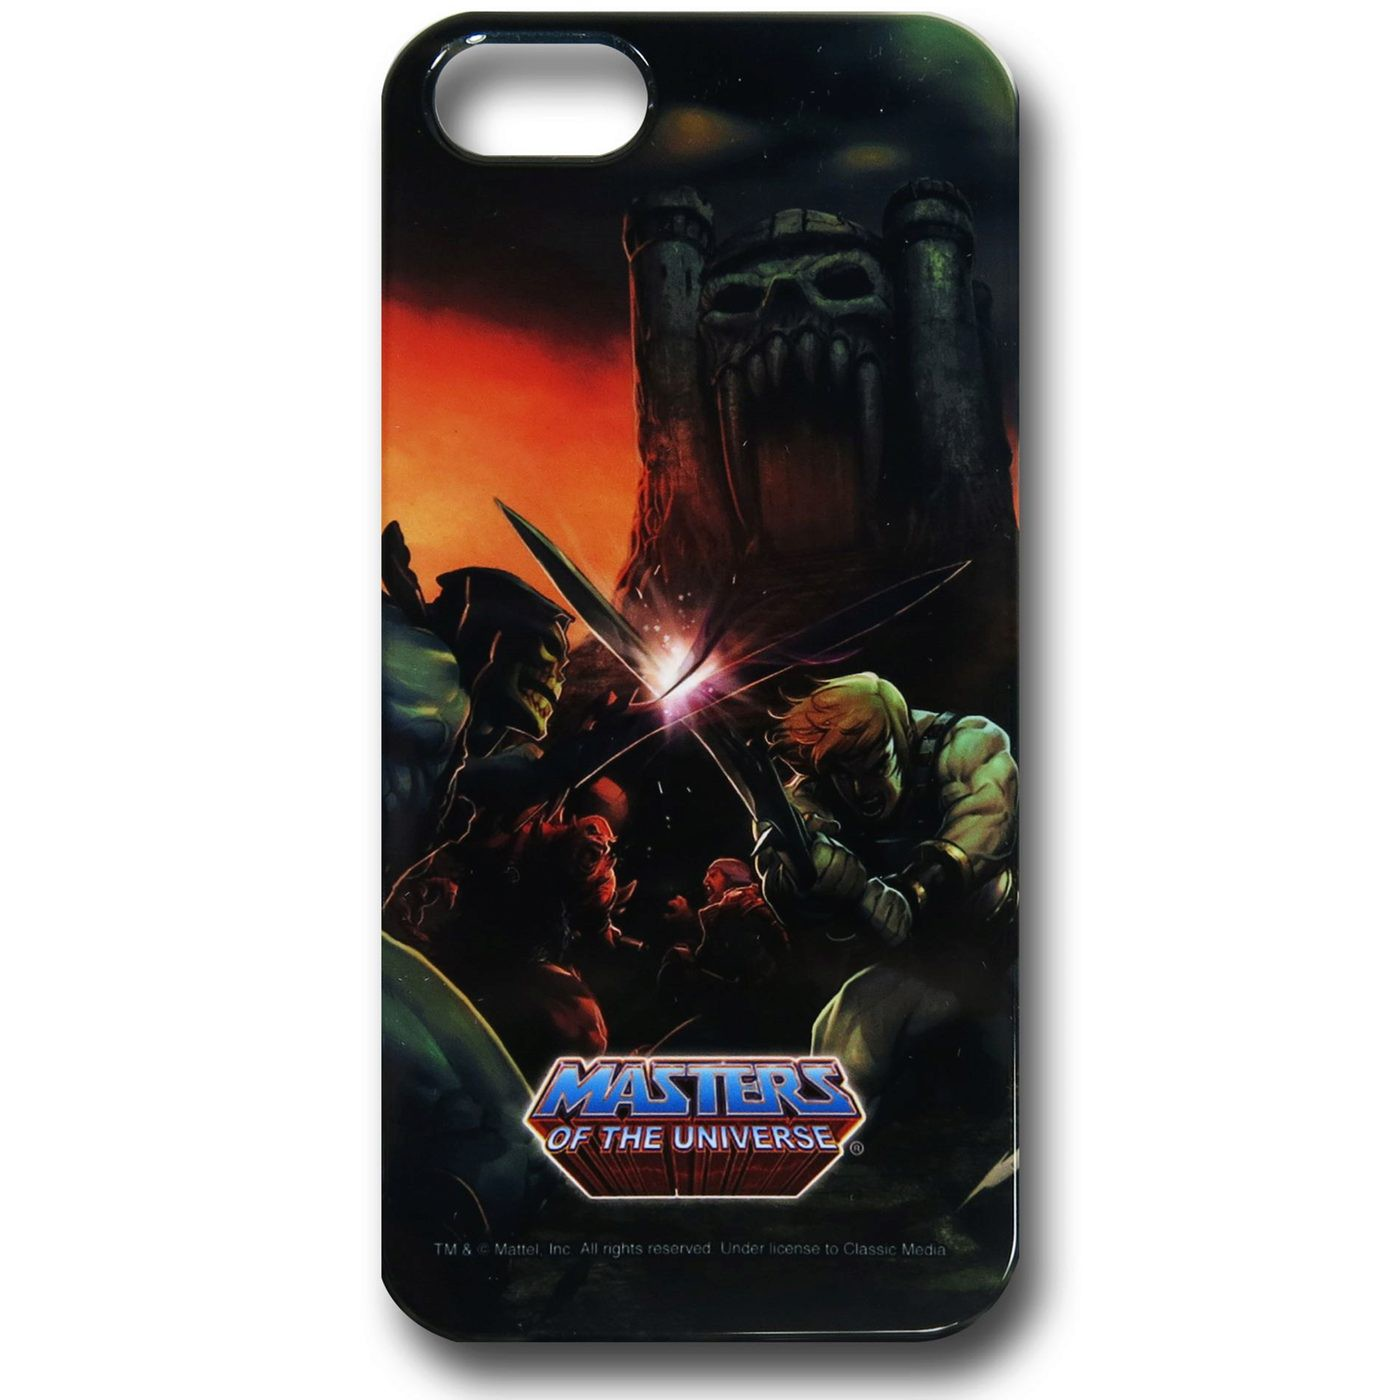 Masters of the Universe iPhone 5 Snap Case